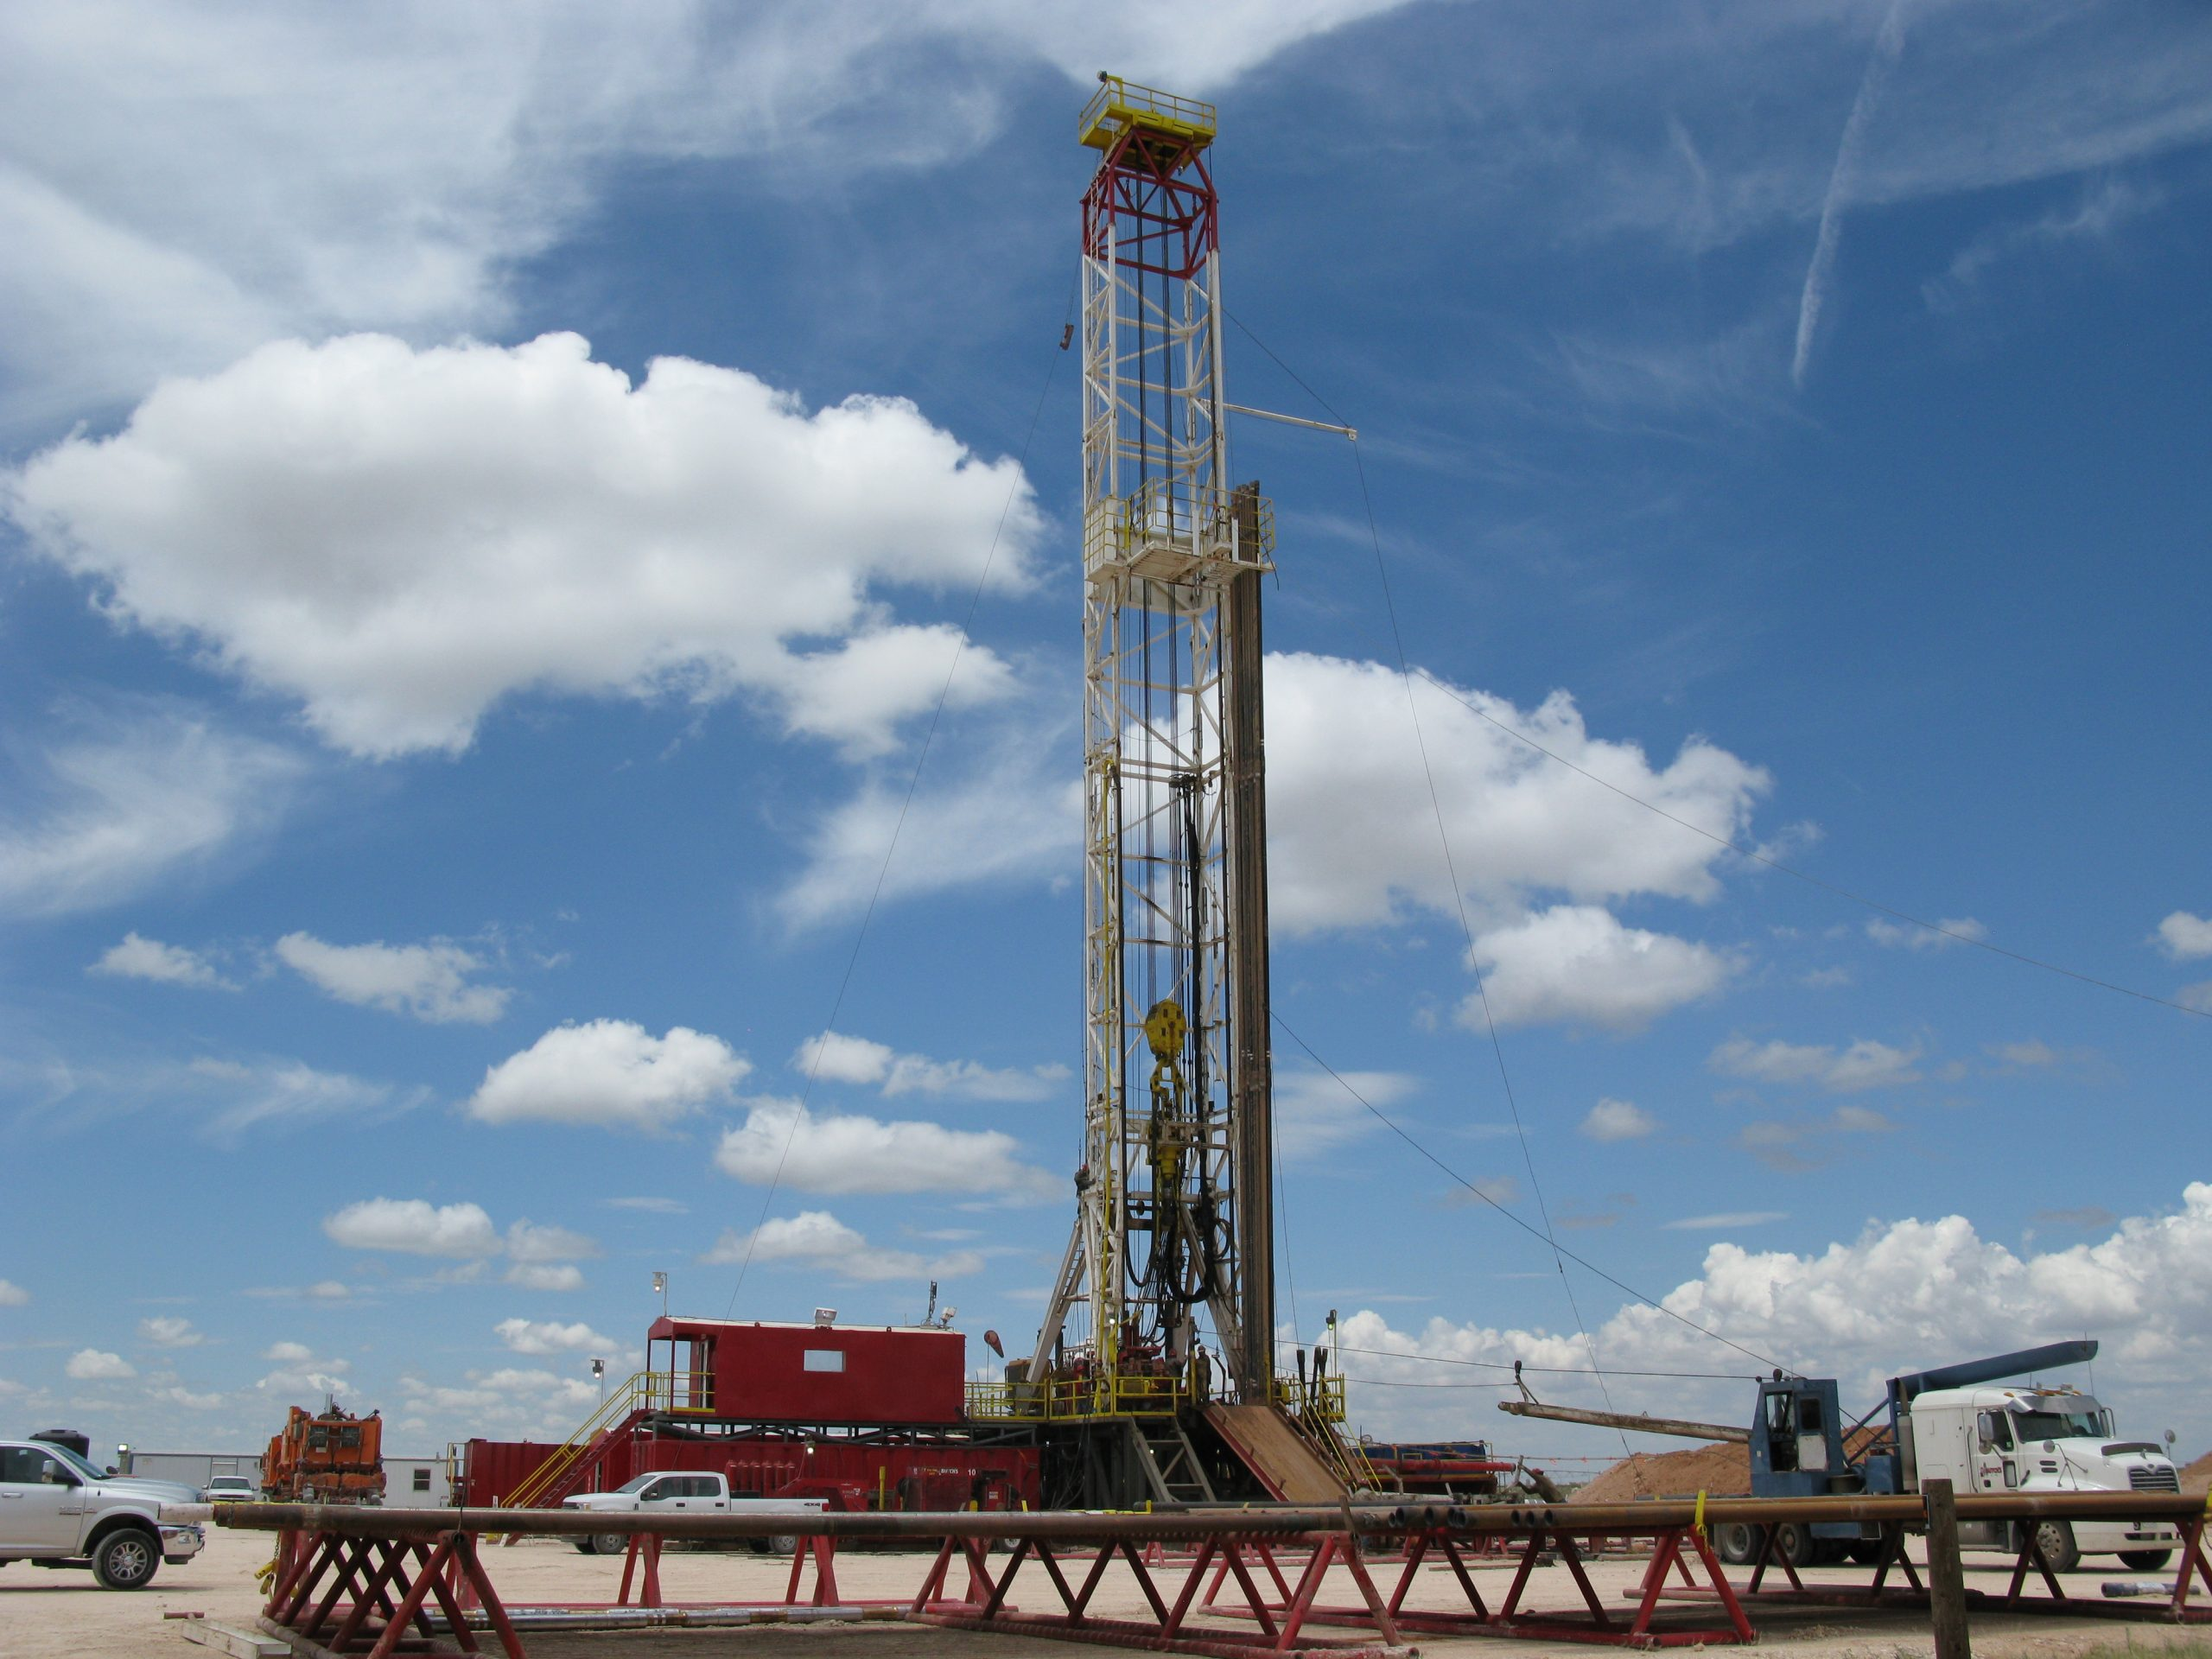 Oil Drilling Rig #4